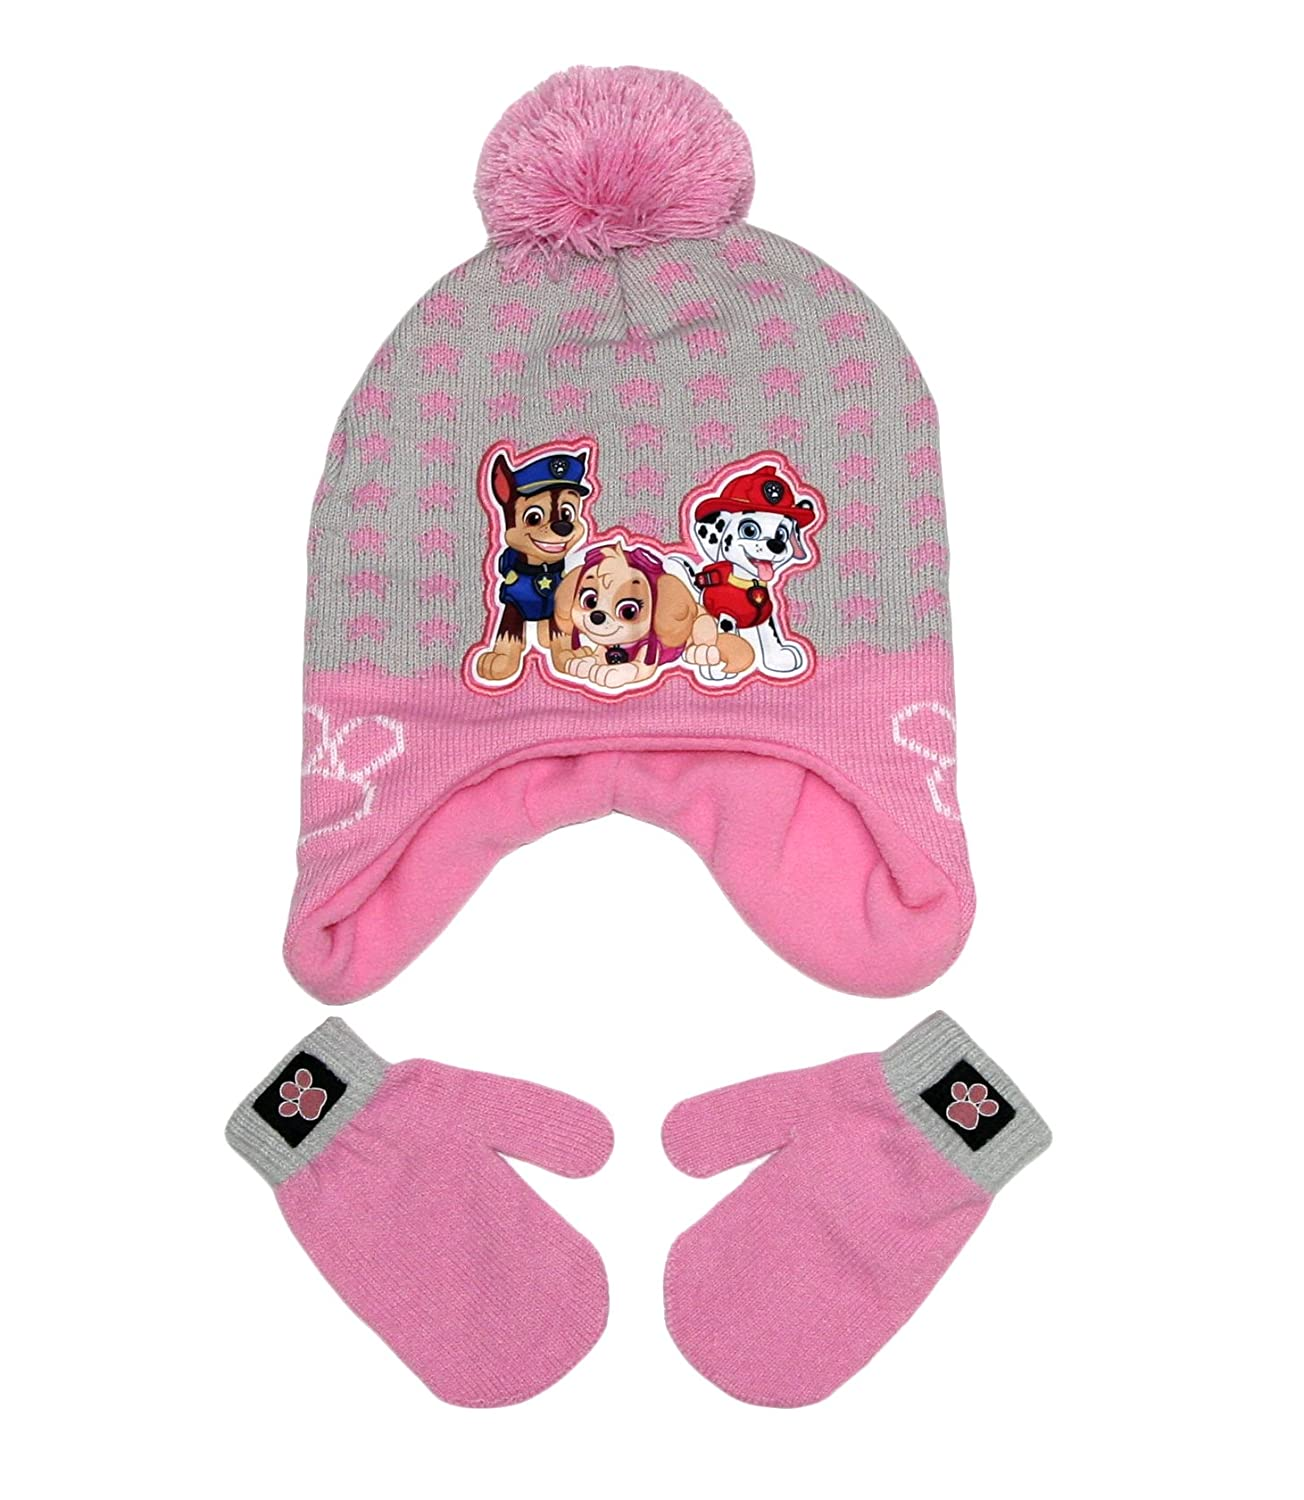 Nickelodeon Paw Patrol Boys Girls Beanie Hat and Mittens Set (Toddler)